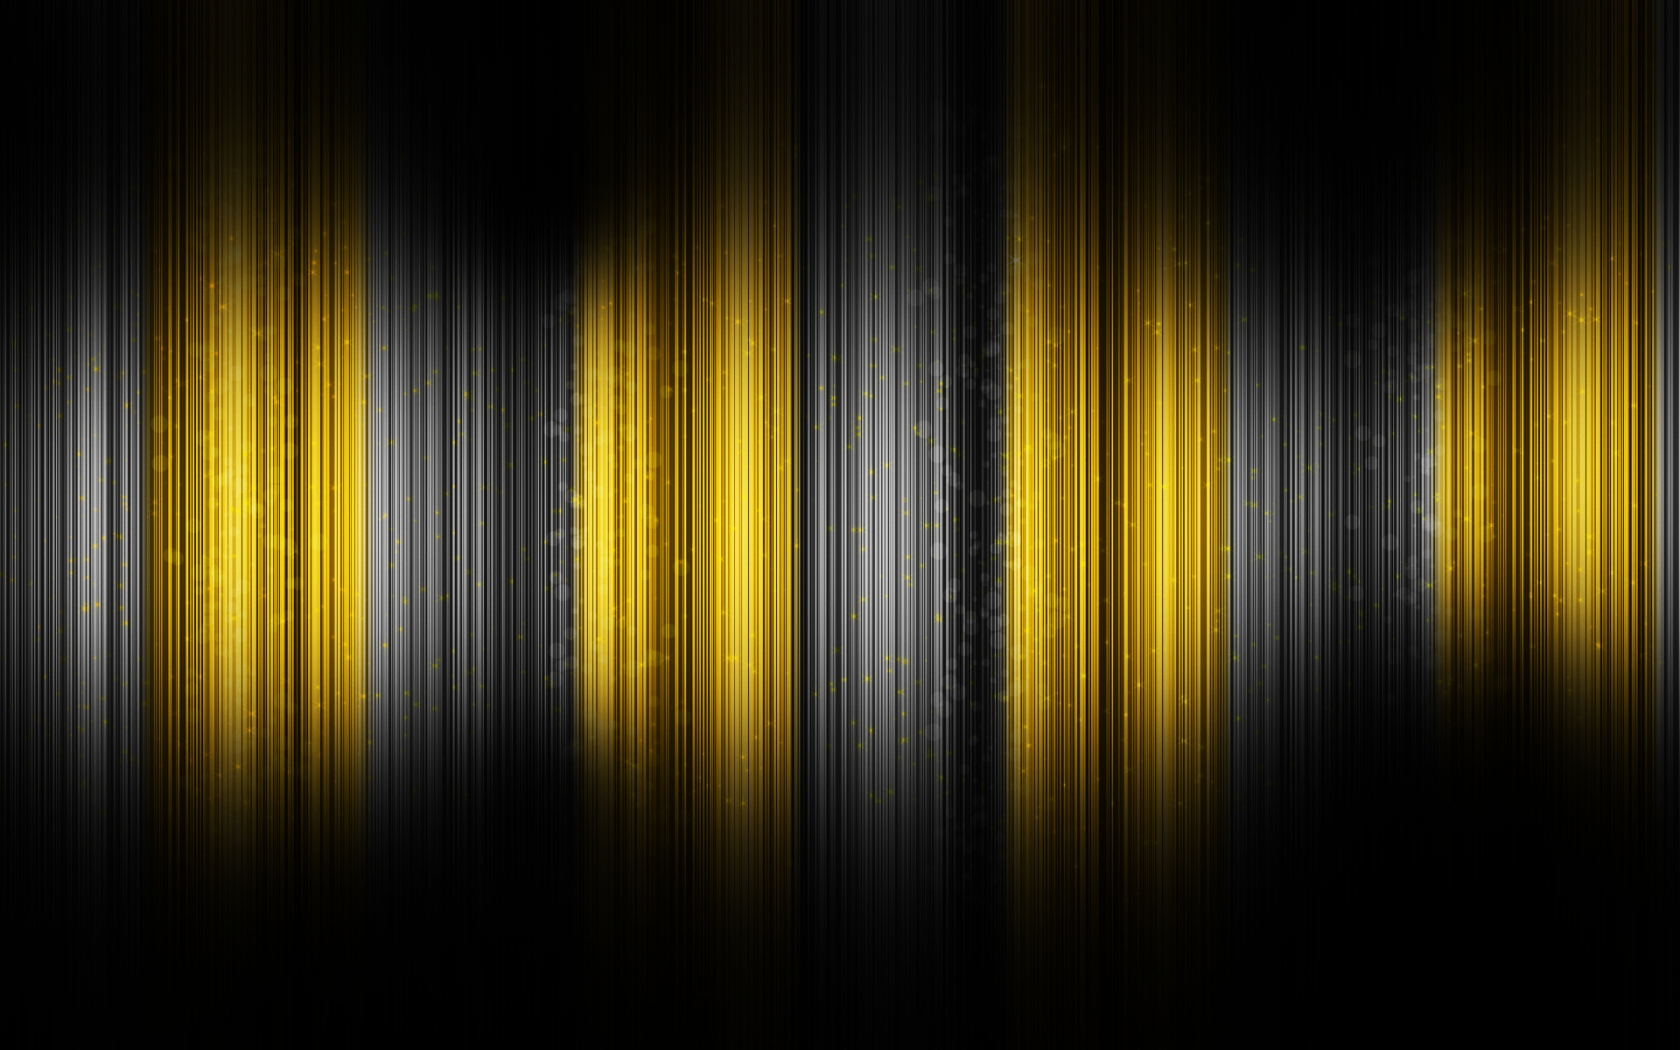 Free Black And Gold Abstract Wallpaper 13 High